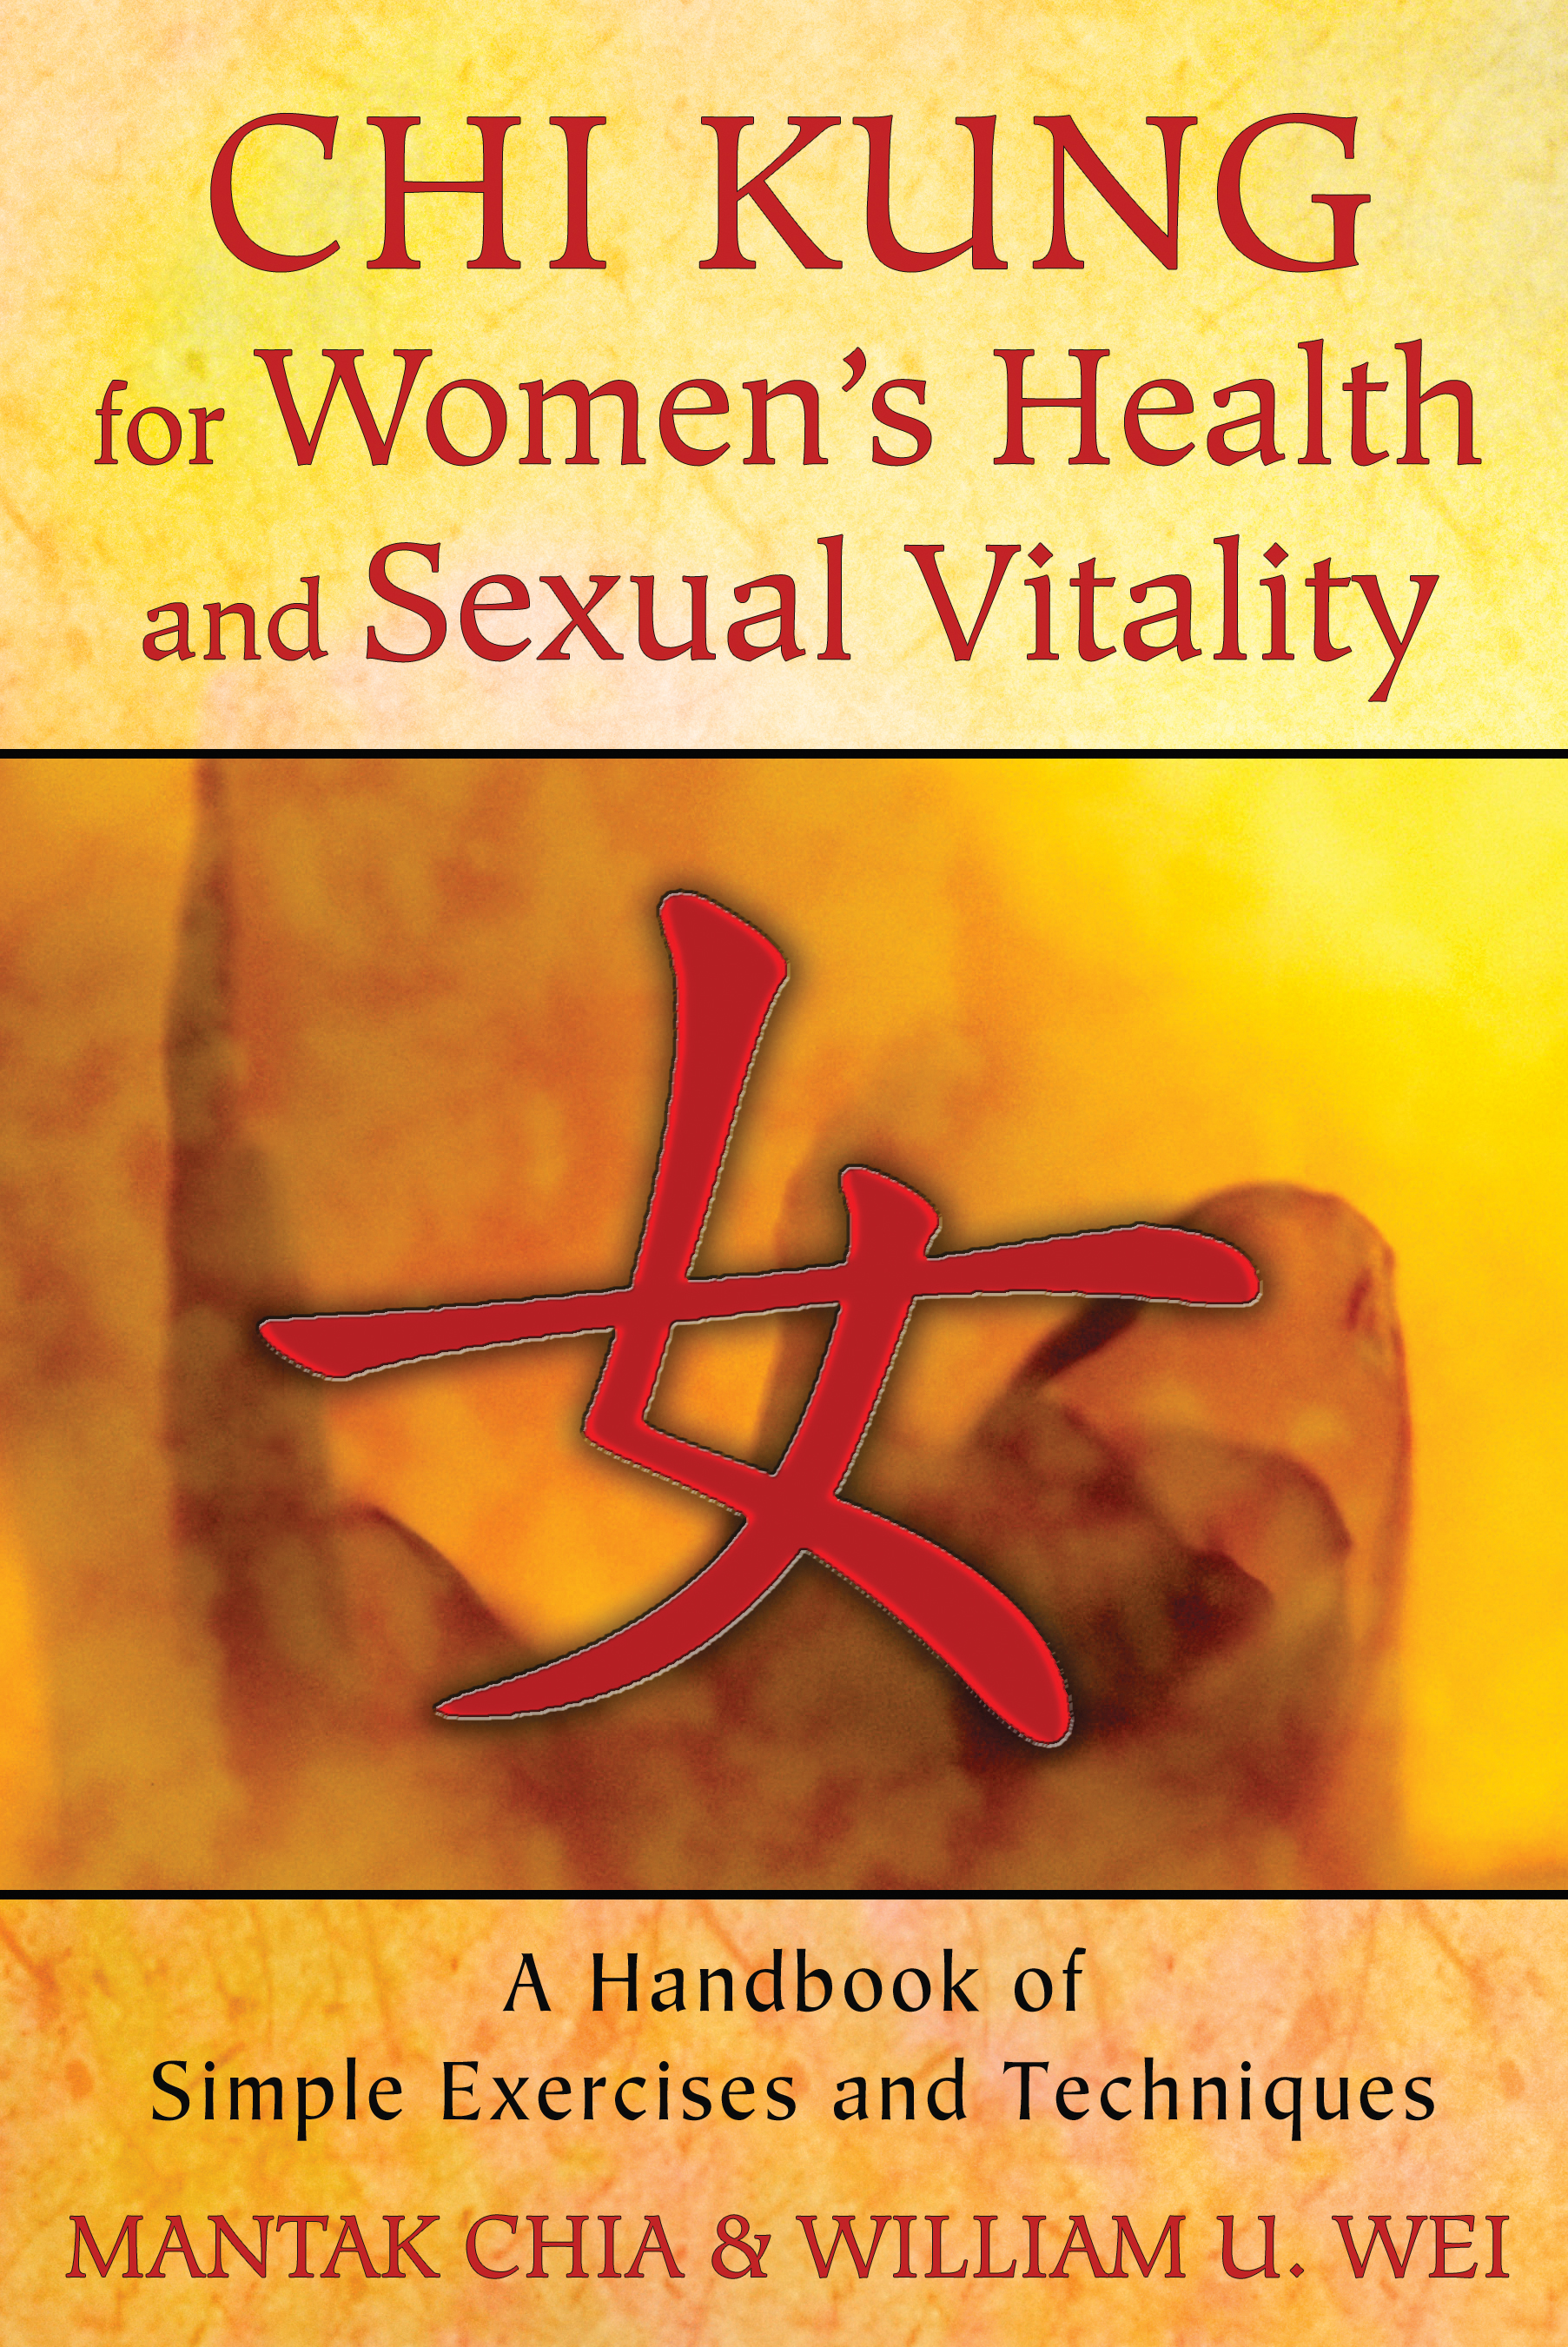 Chi-kung-for-womens-health-and-sexual-vitality-9781620552254_hr